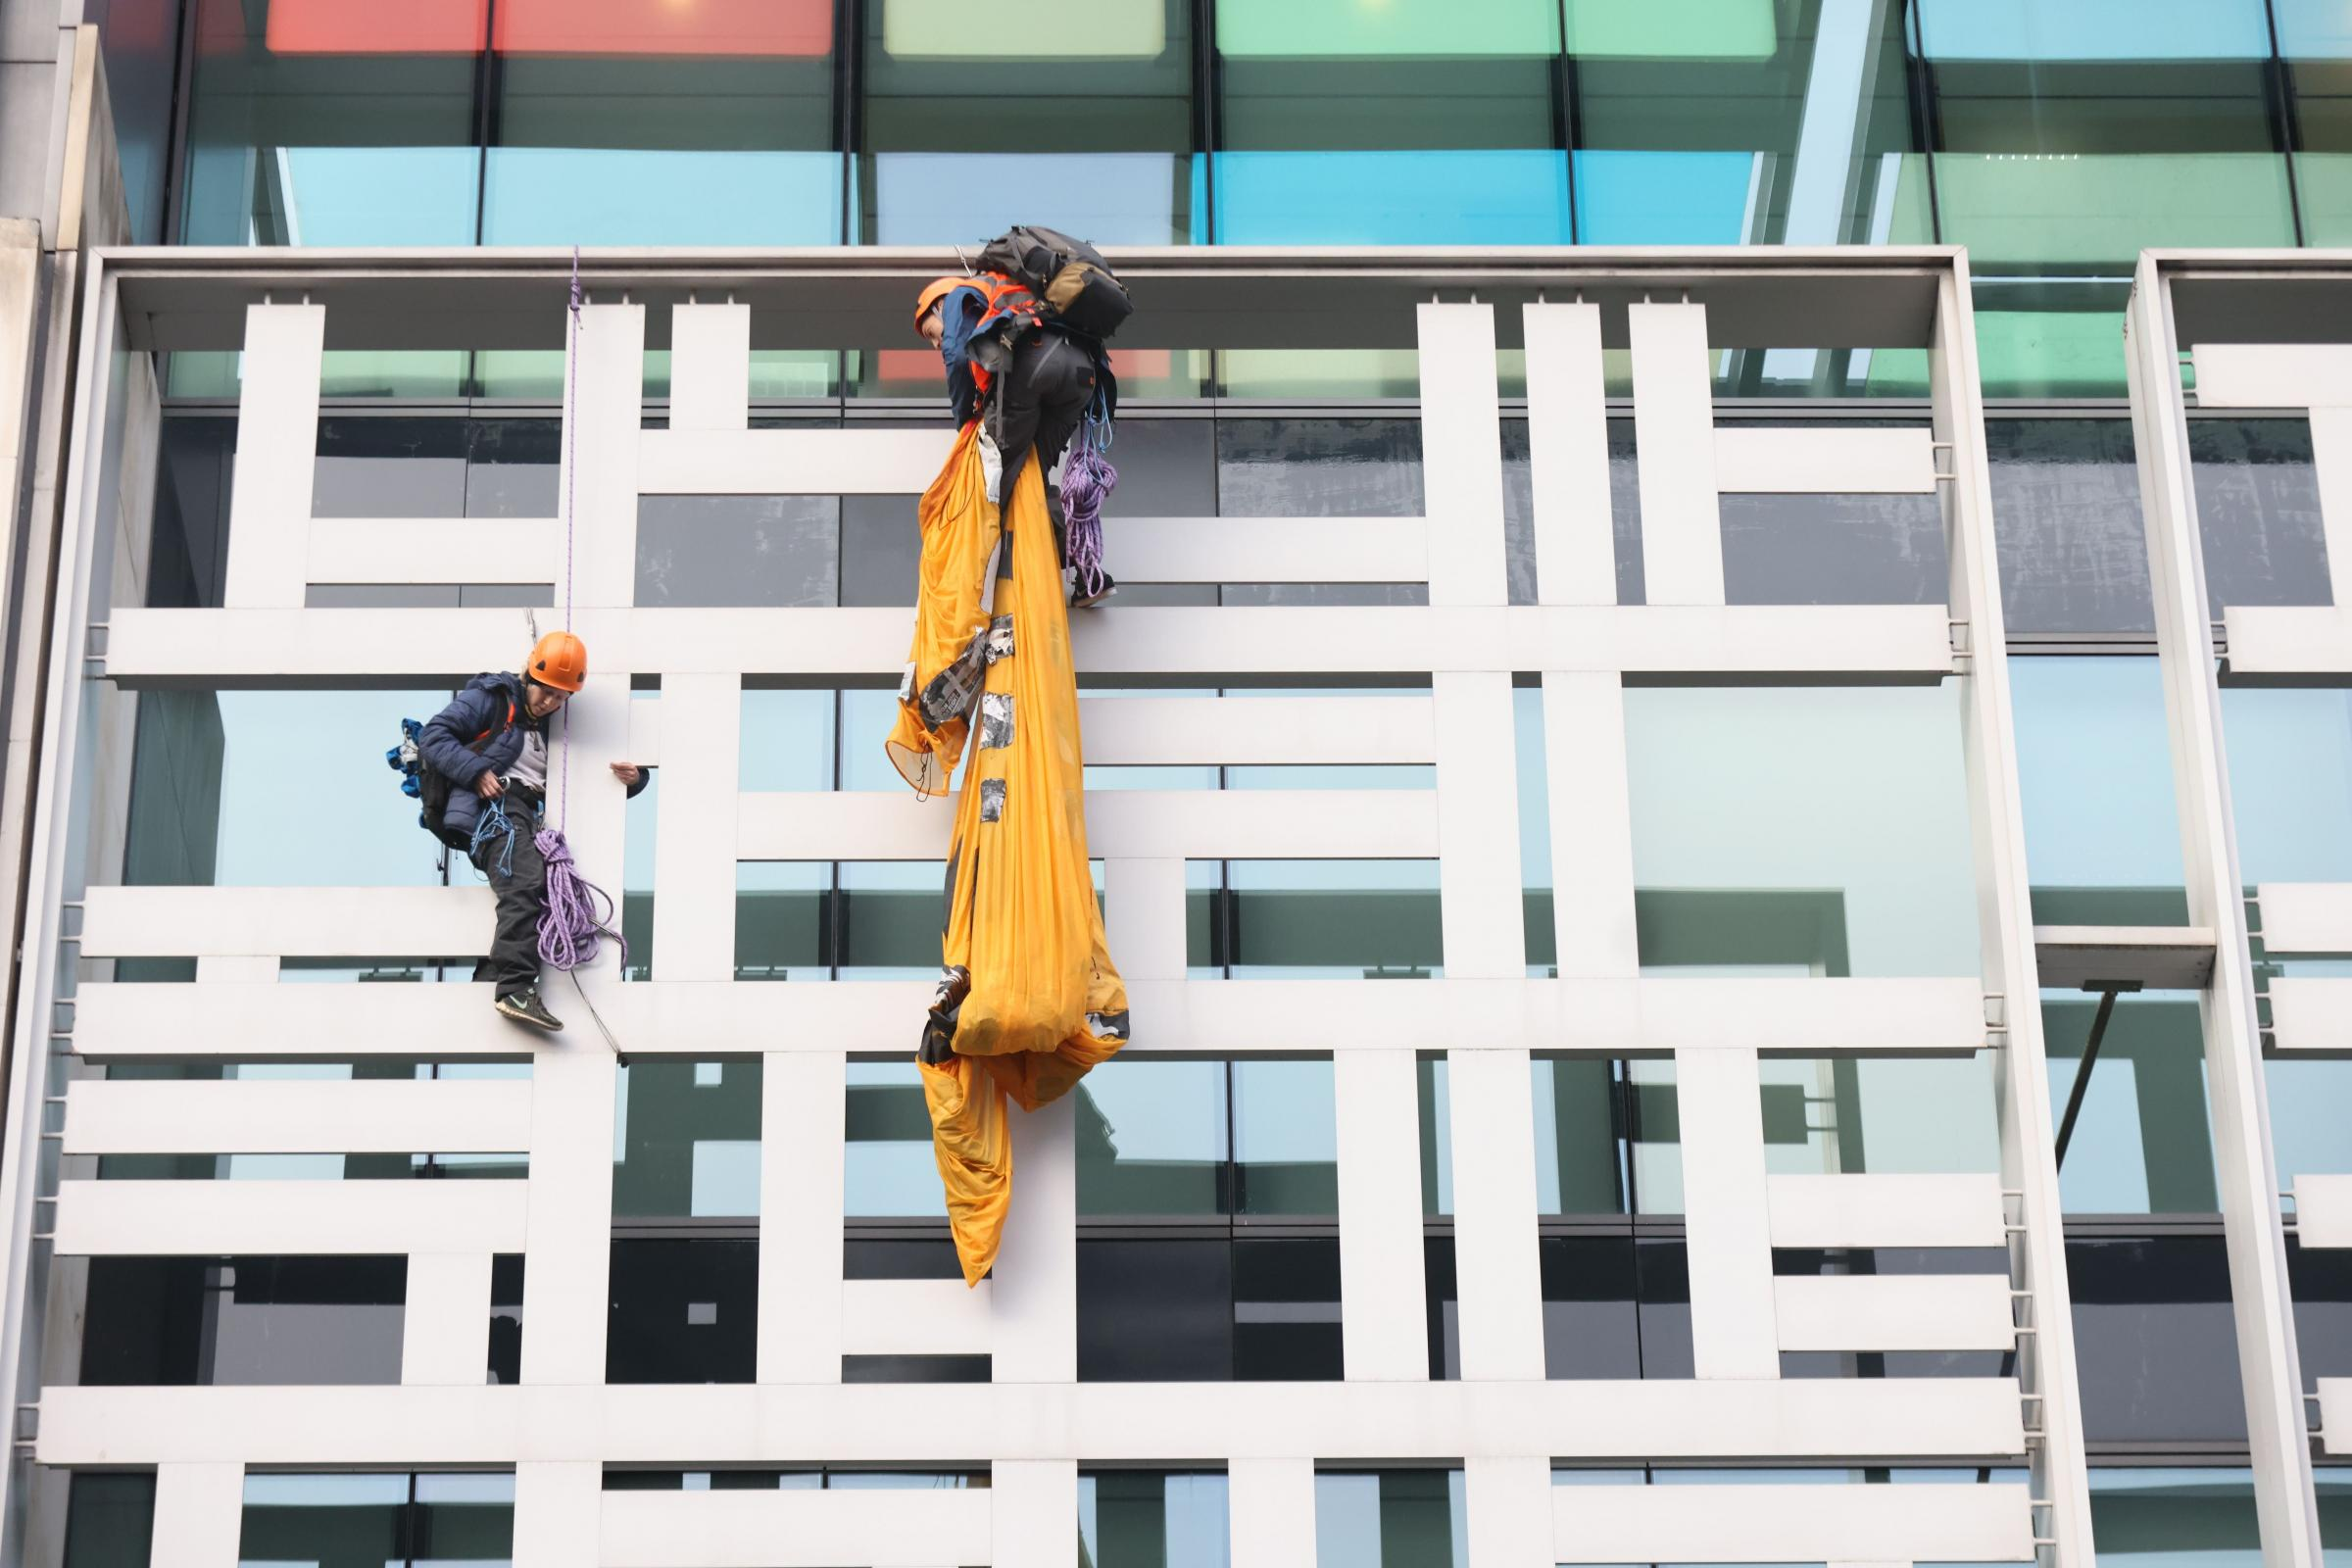 newsandstar.co.uk - Press Association 2021 - Activists scale Defra building in call for meat and dairy farm subsidies to end